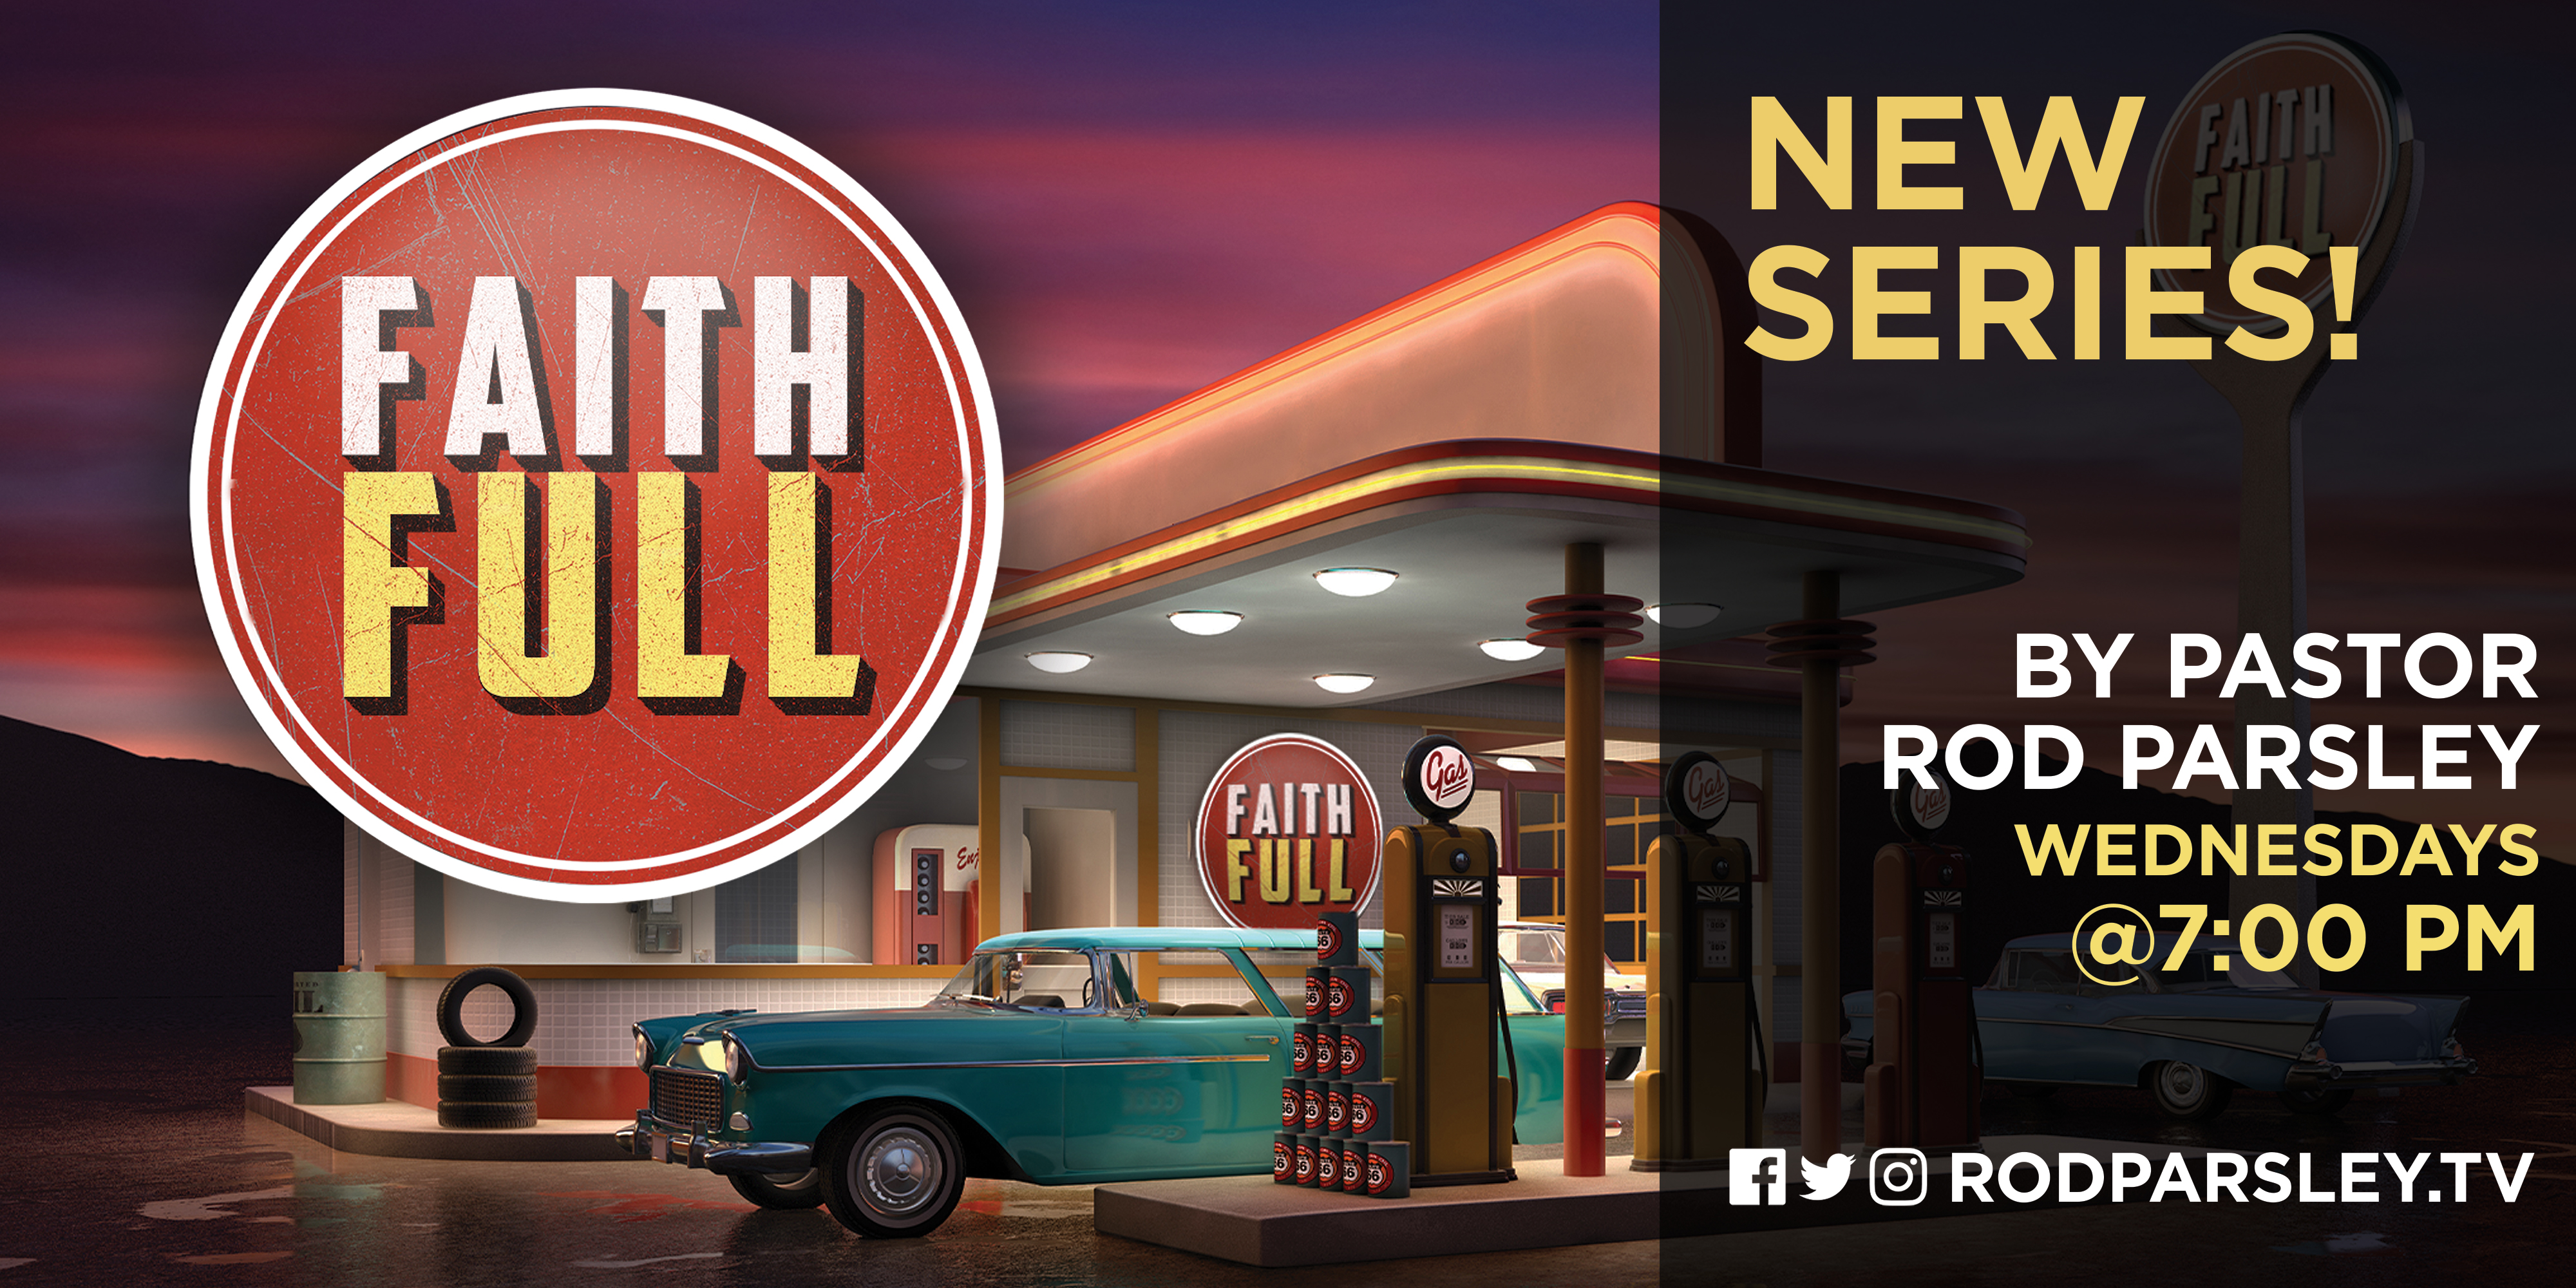 FaithFULL New Series By Pastor Rod Parsley Wednesdays @7:00 PM